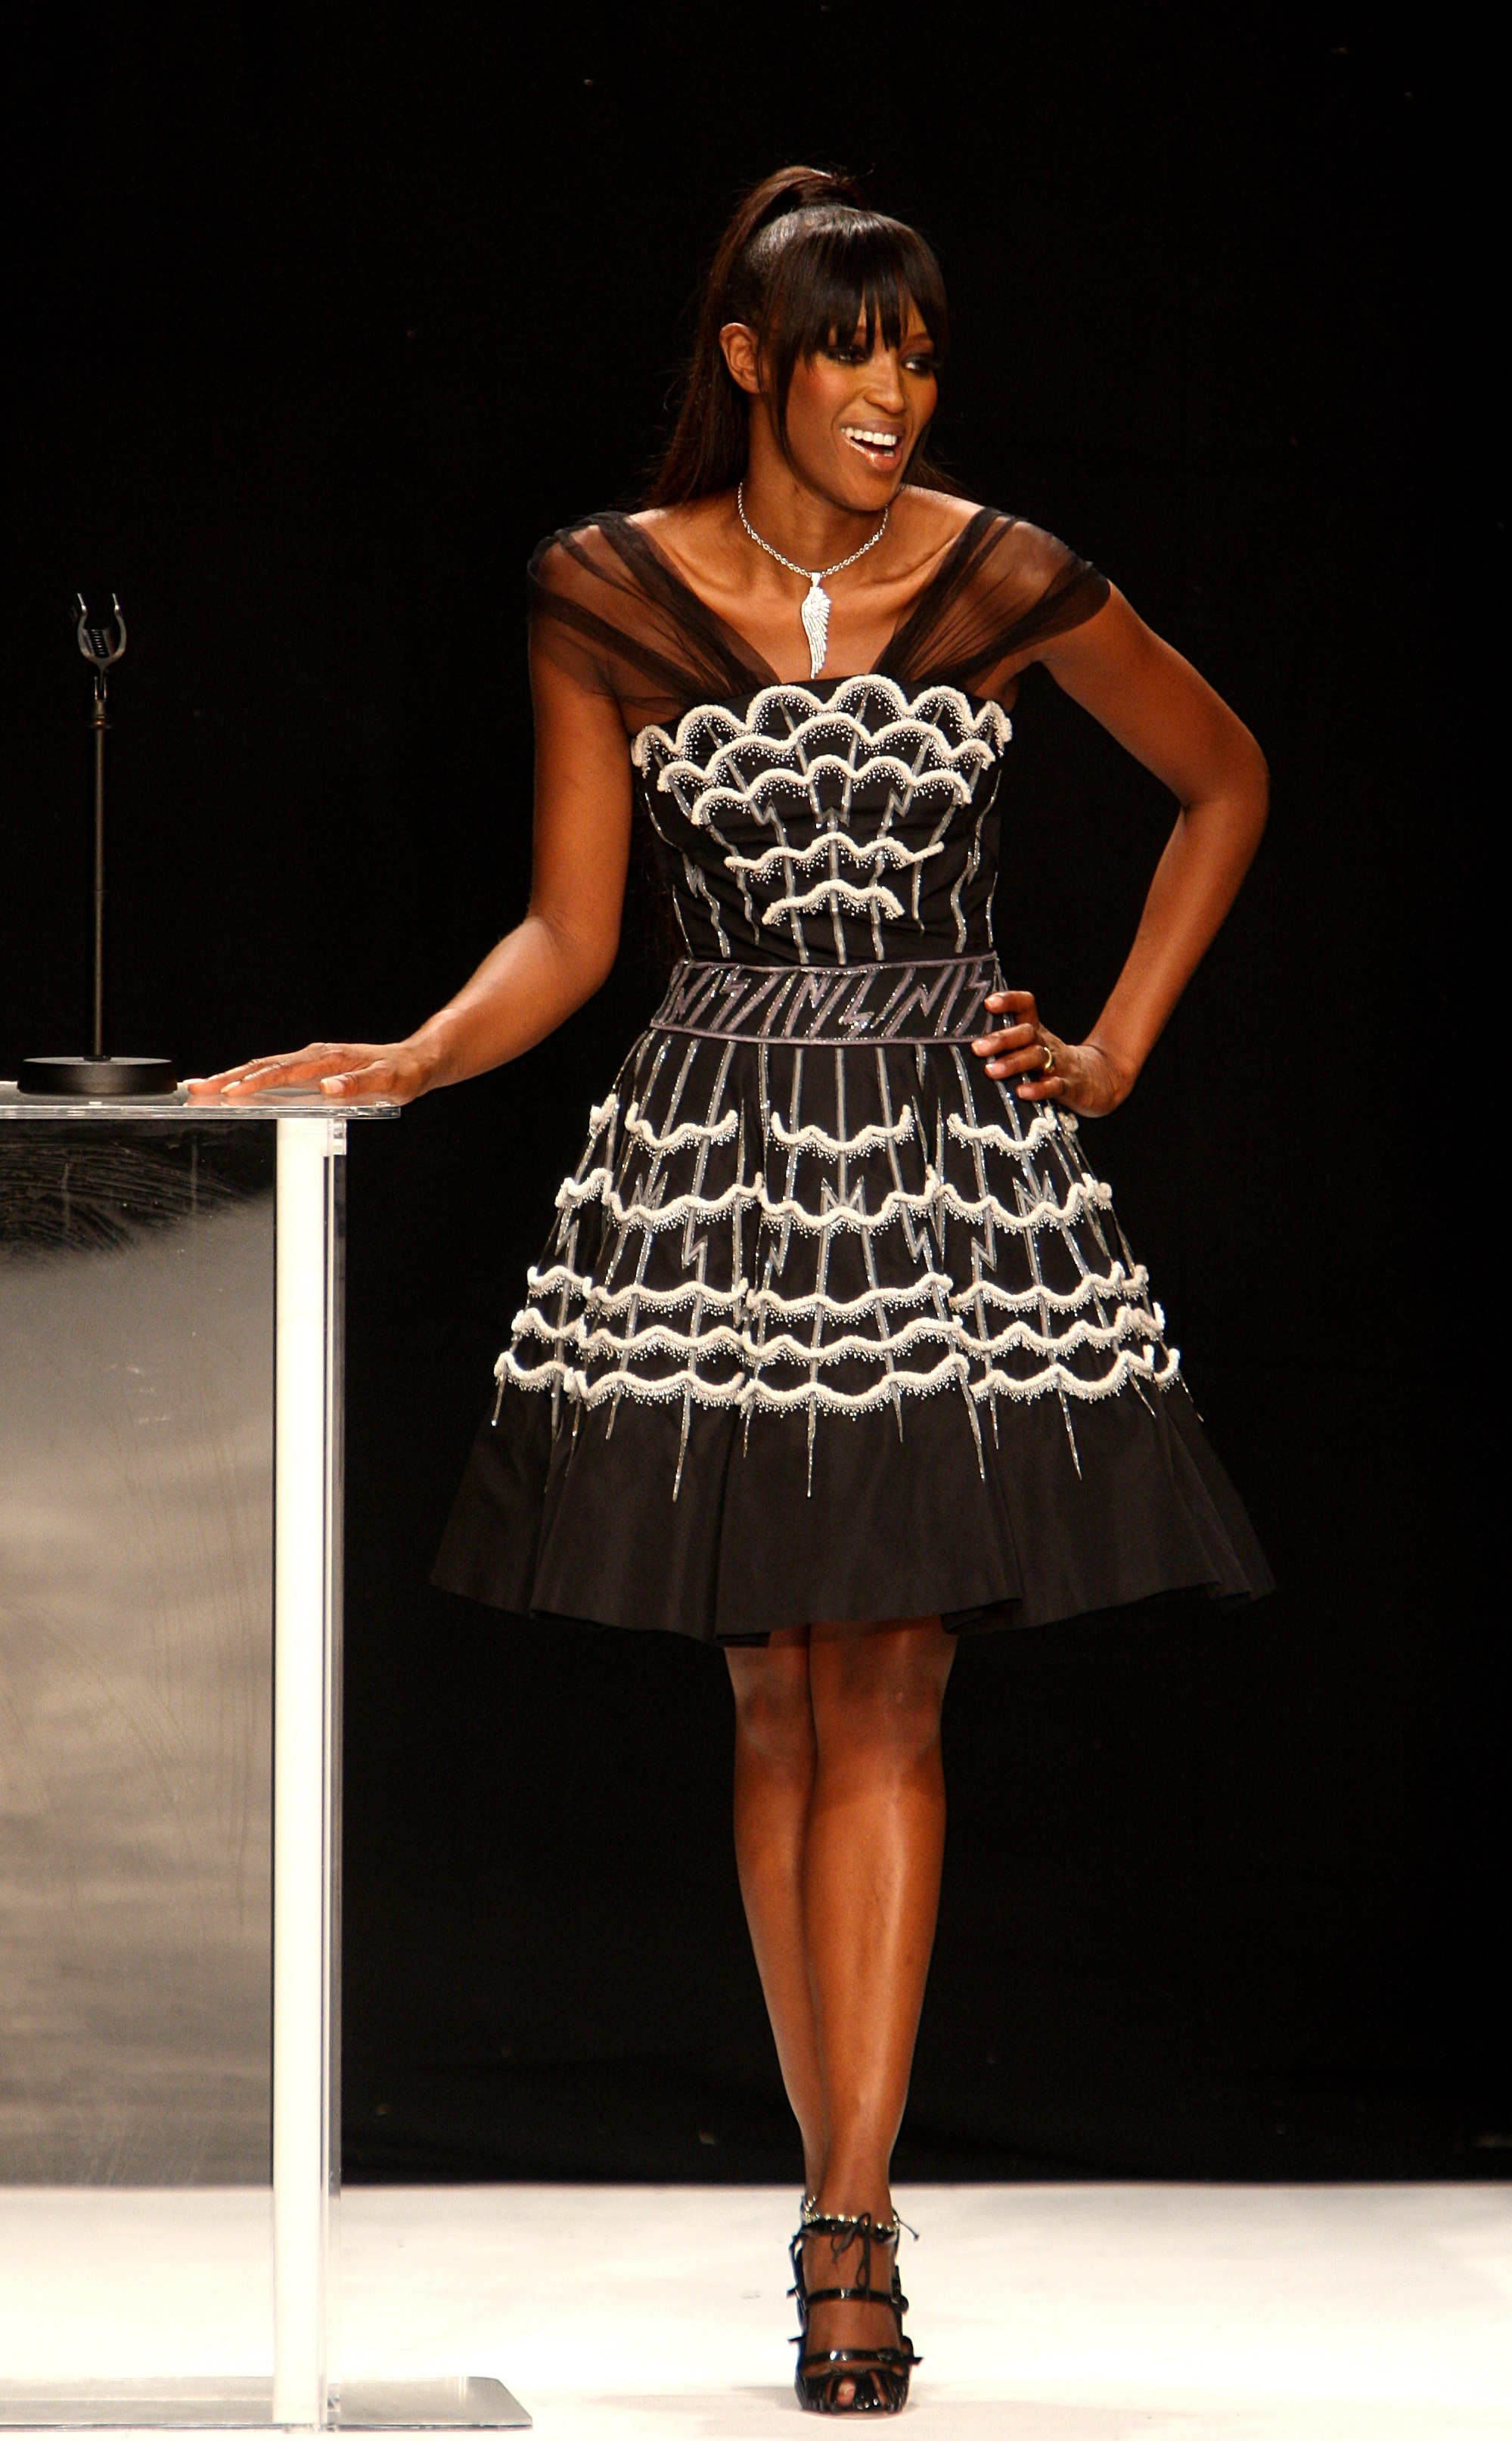 Campbell at the 2007 Fashion for Relief show